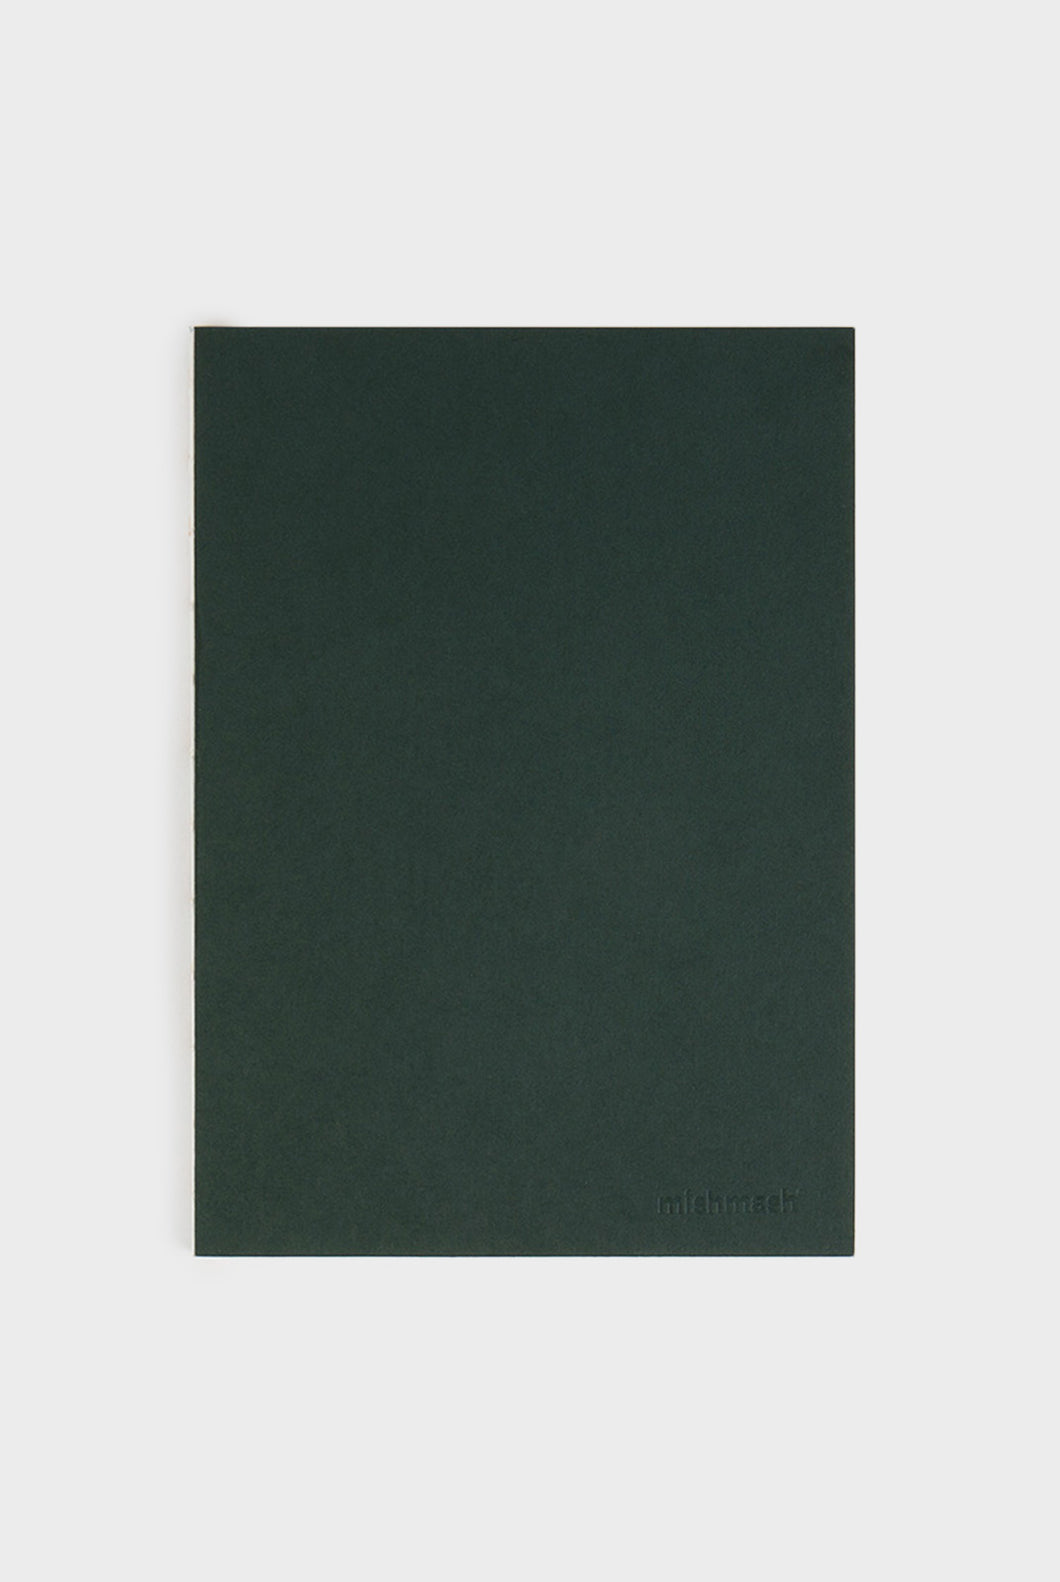 mishmash - Holy Golden Notebook - Plain - B5 - Racing Green